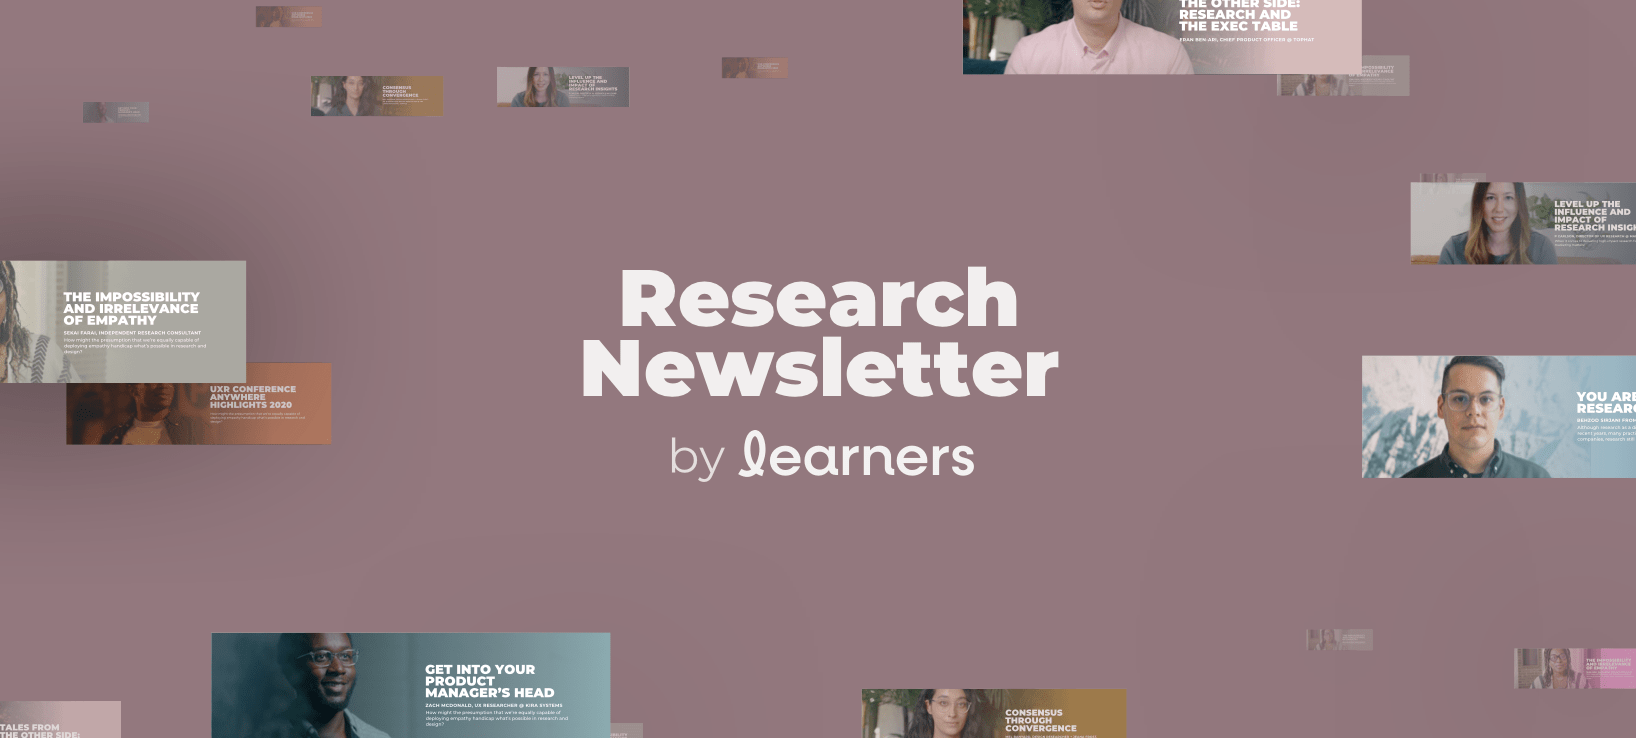 The Research Newsletter by Learners